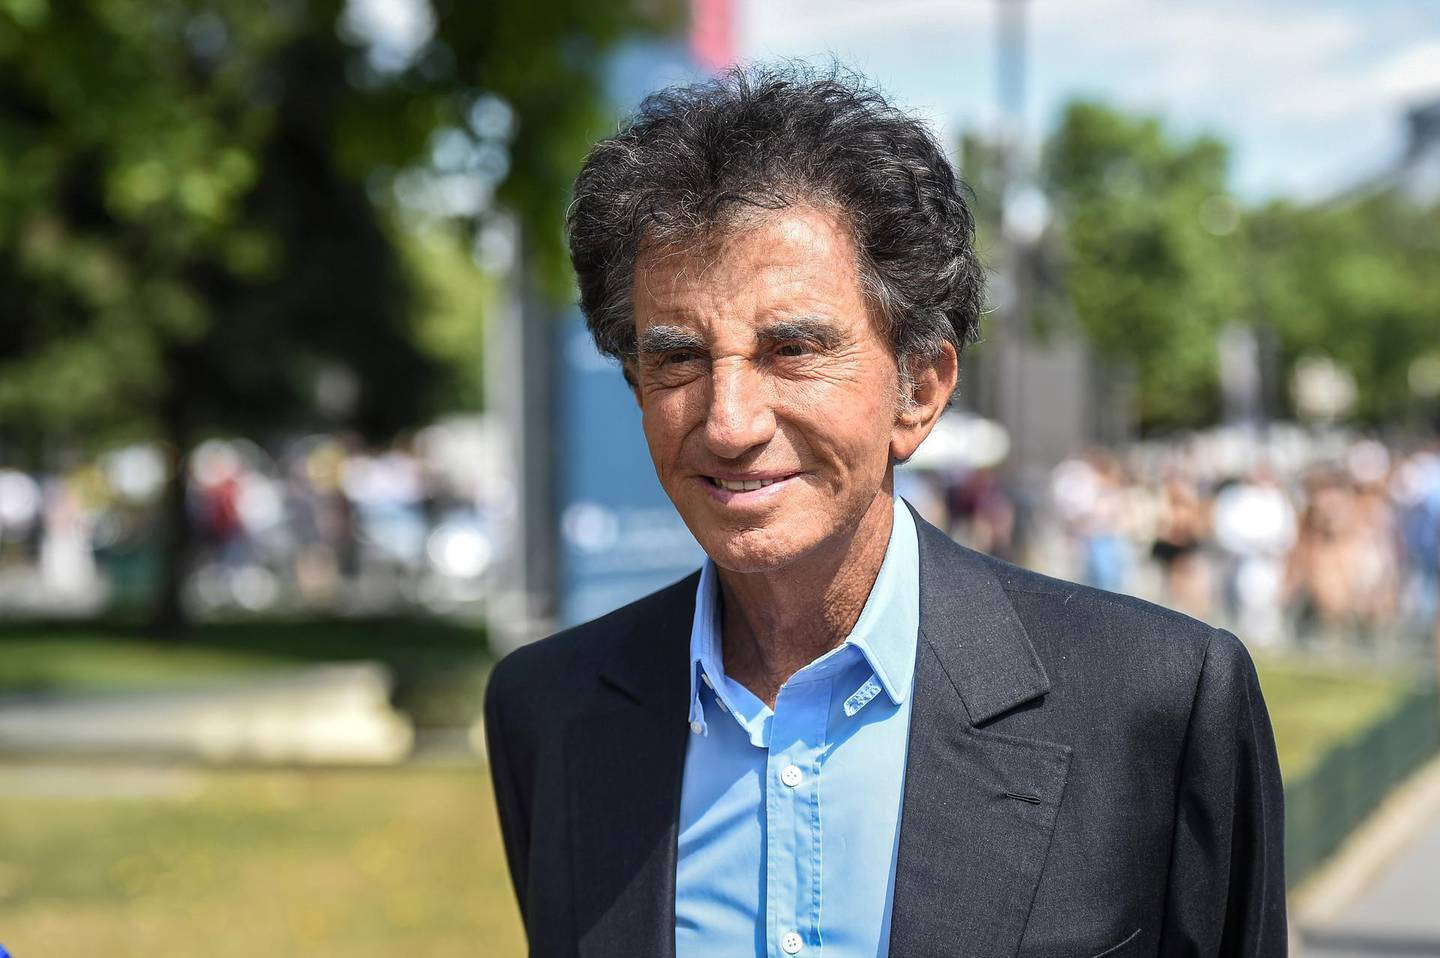 President of the Arab World Institute (IMA) Jack Lang arrives for the Chanel Women's Fall-Winter 2019/2020 Haute Couture collection fashion show at the Grand Palais in Paris, on July 2, 2019. (Photo by LUCAS BARIOULET / AFP)